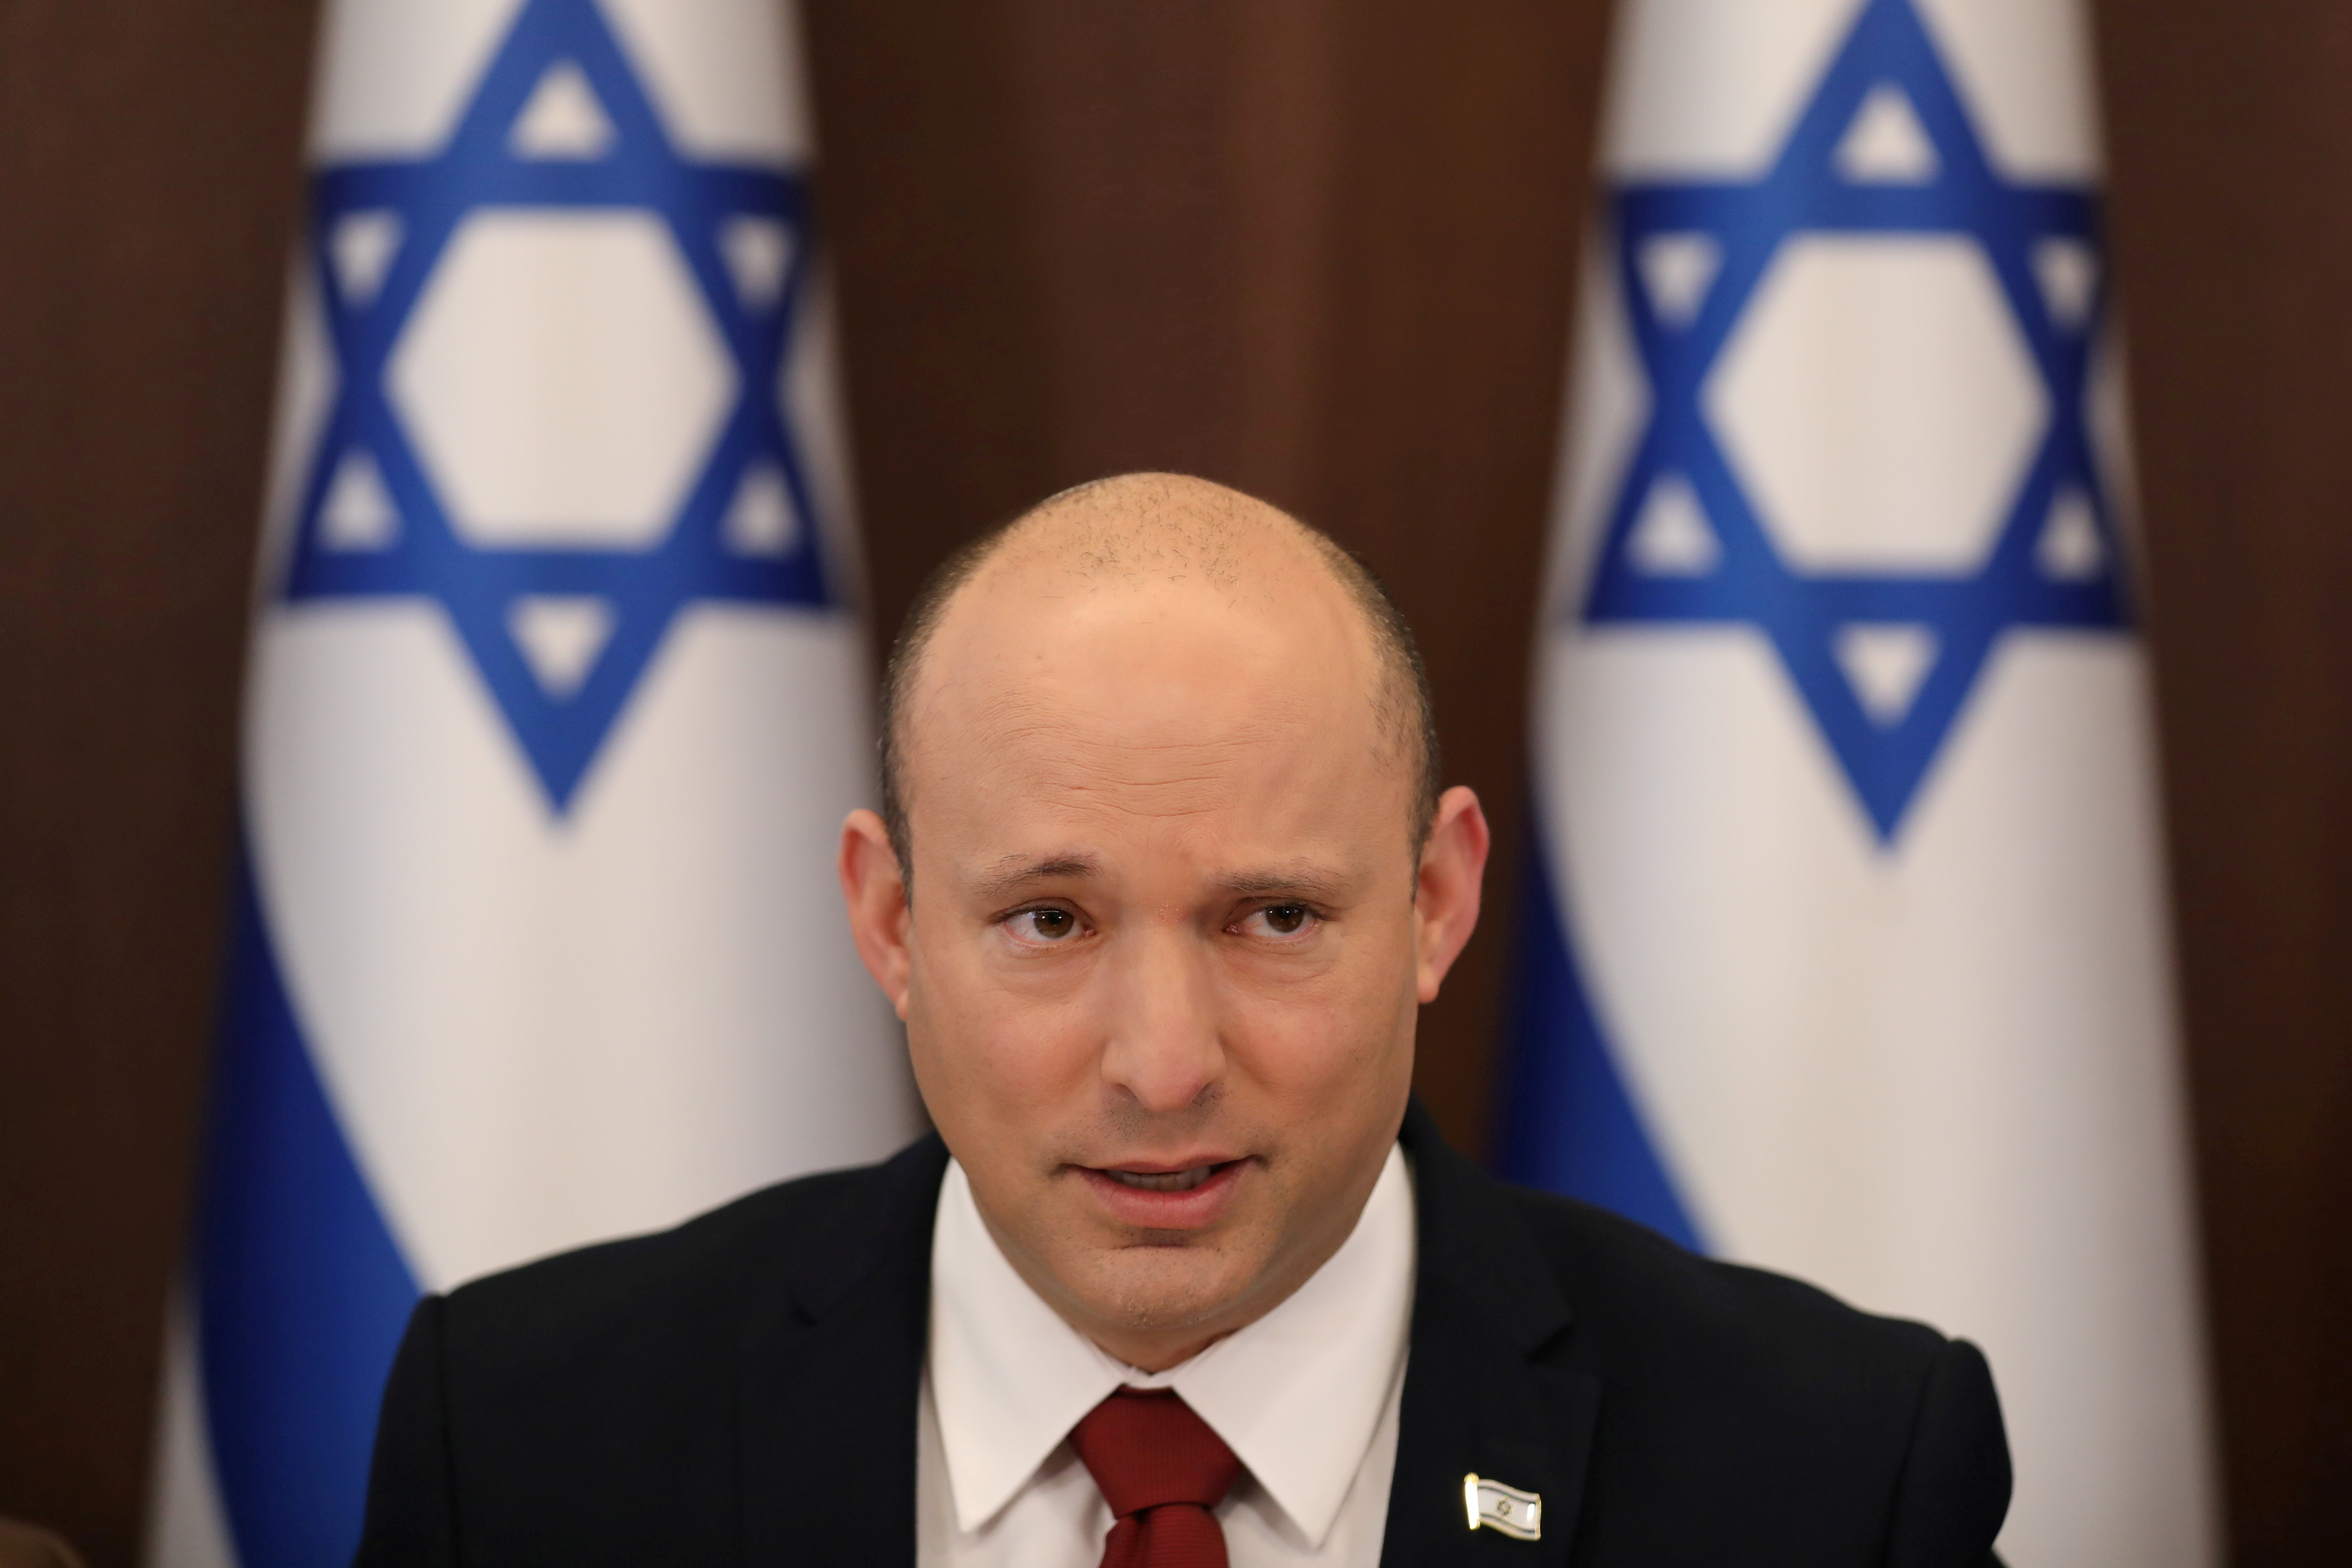 Israeli Prime Minister Naftali Bennett attends the weekly cabinet meeting at the prime minister's office in Jerusalem August 1, 2021. Abir Sultan/Pool via REUTERS/File Photo